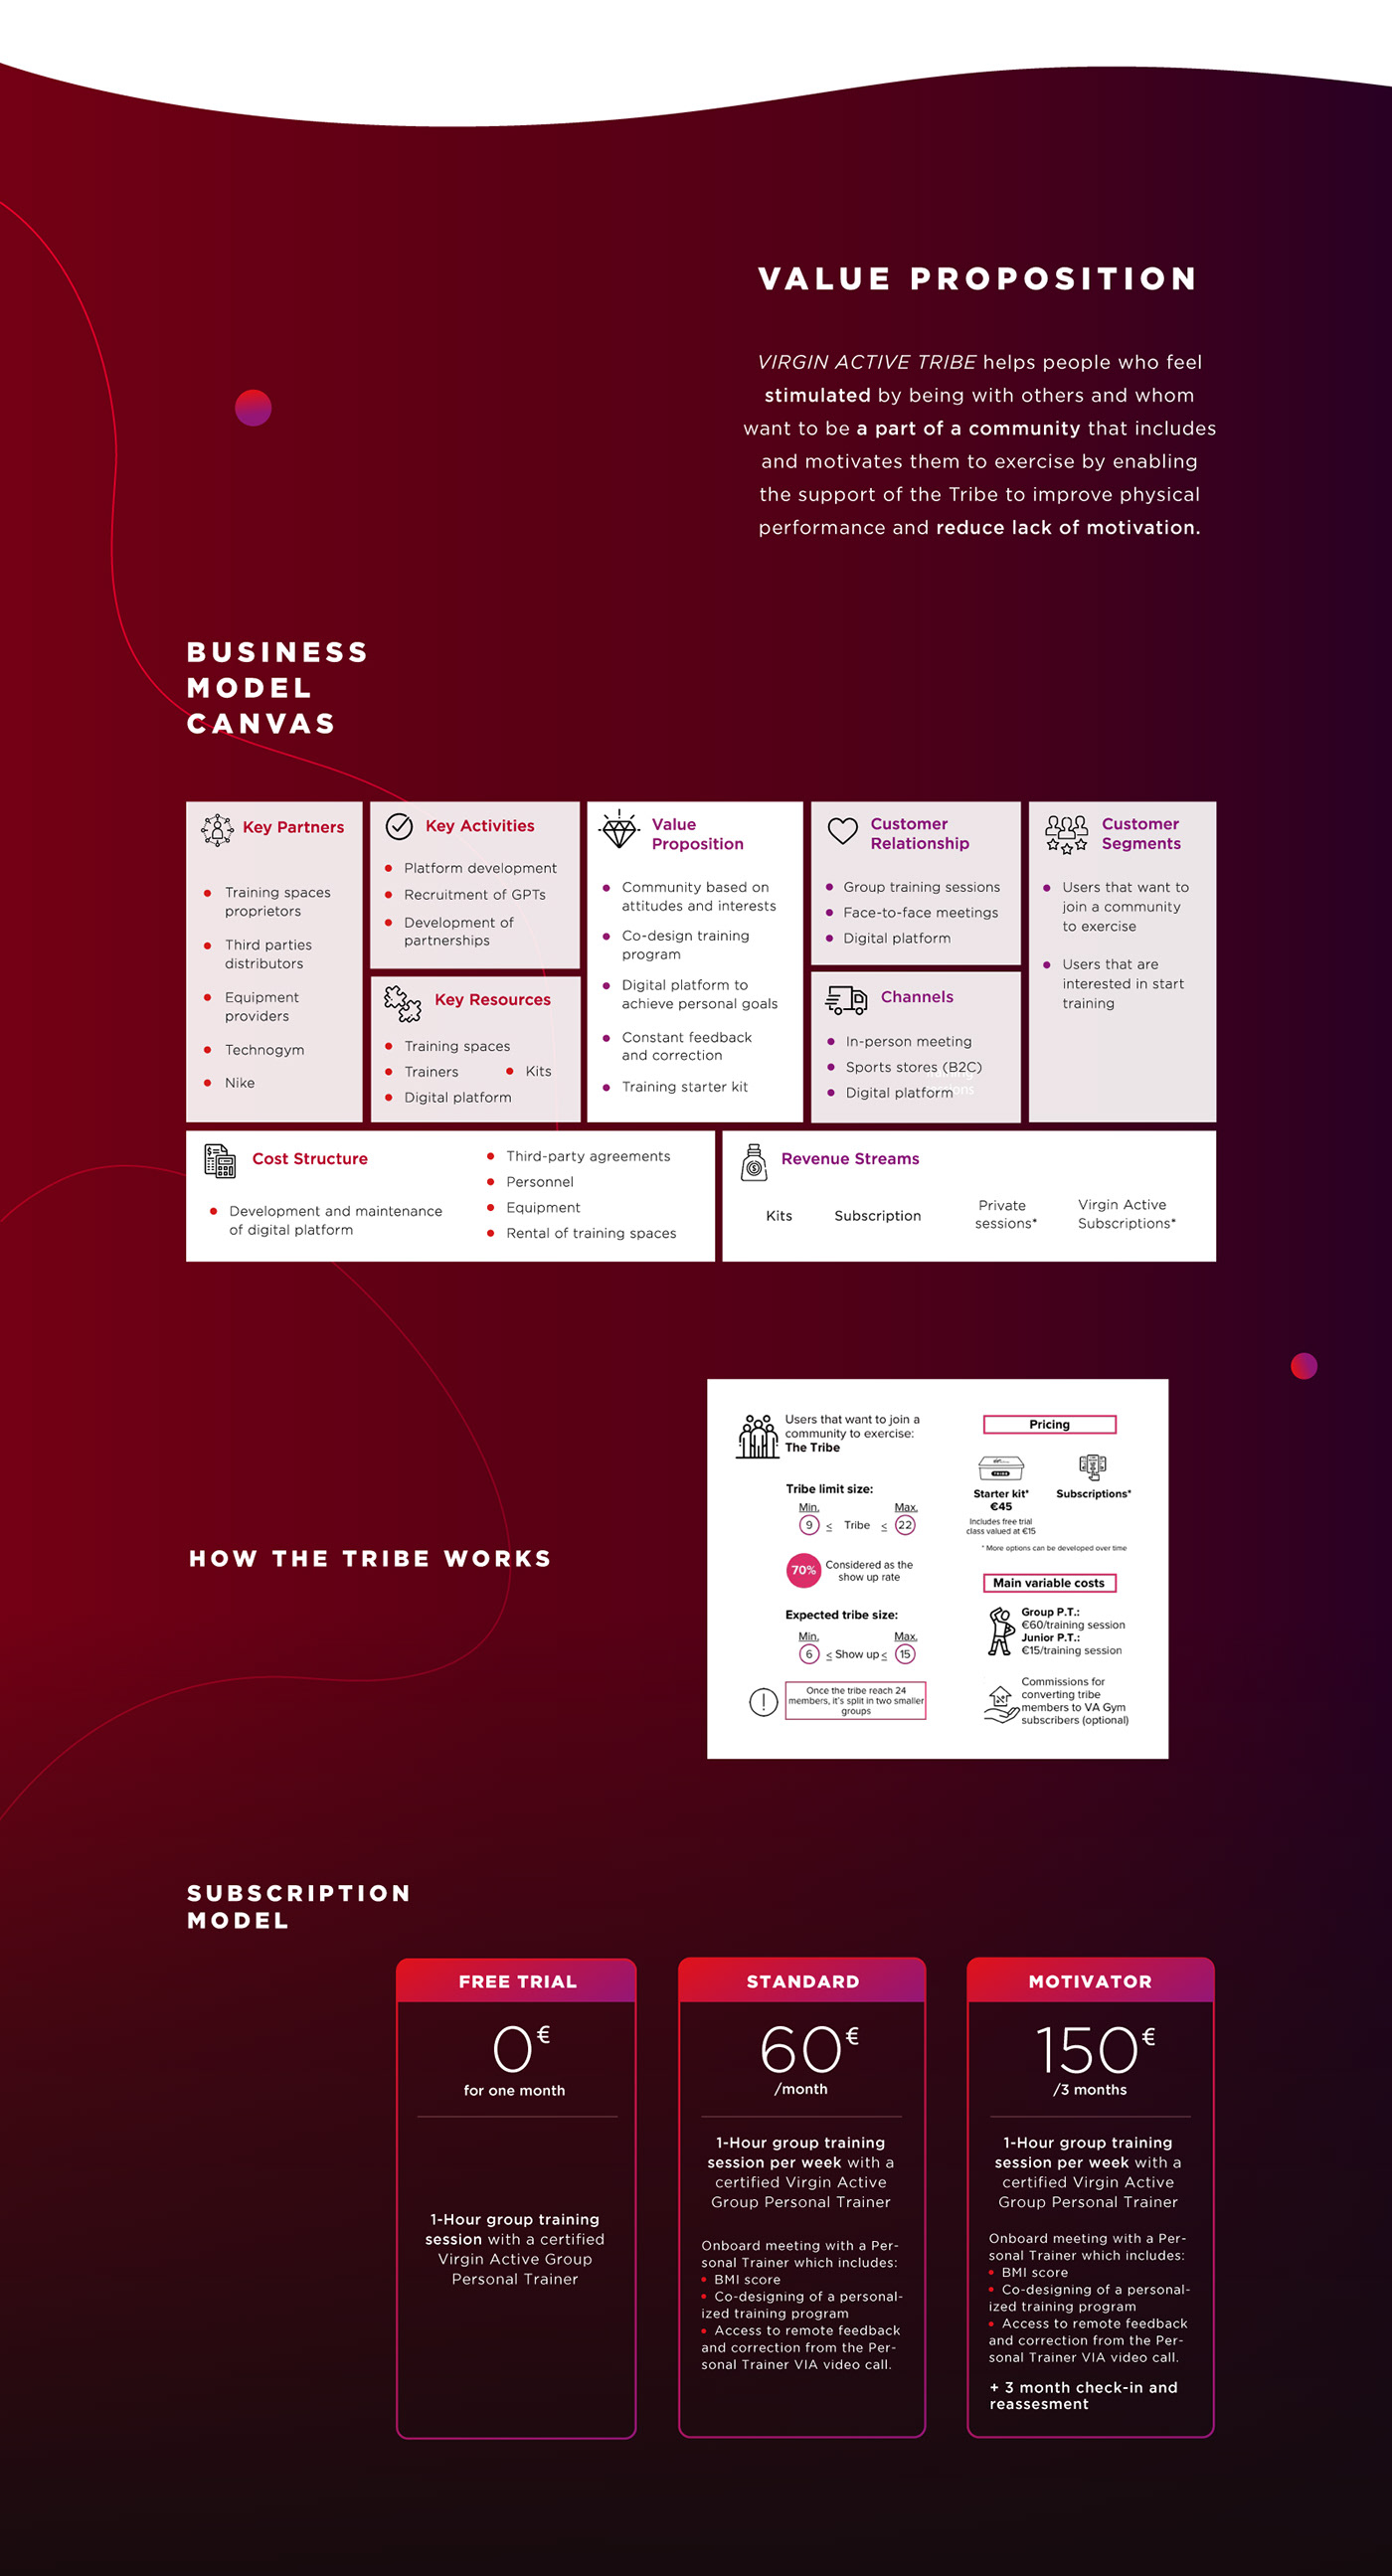 fitness exercise personal training virgin active Group Exercise workout Gym Service Design user scenario storyboard User story